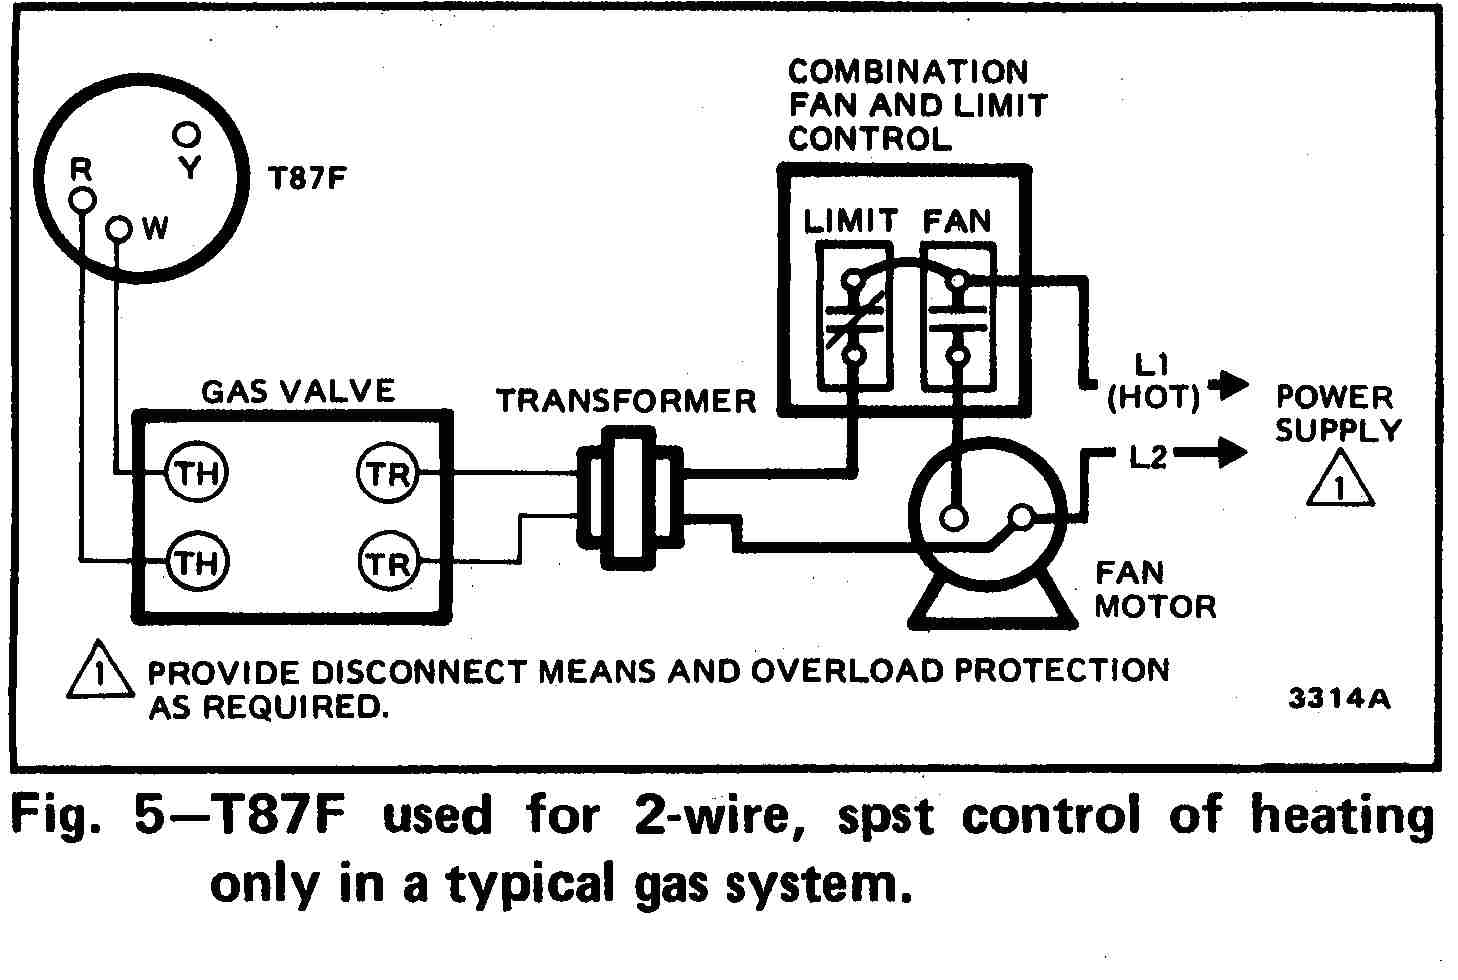 room thermostat wiring diagrams for hvac systems wiring diagram for thermostat to boiler honeywell t87f thermostat